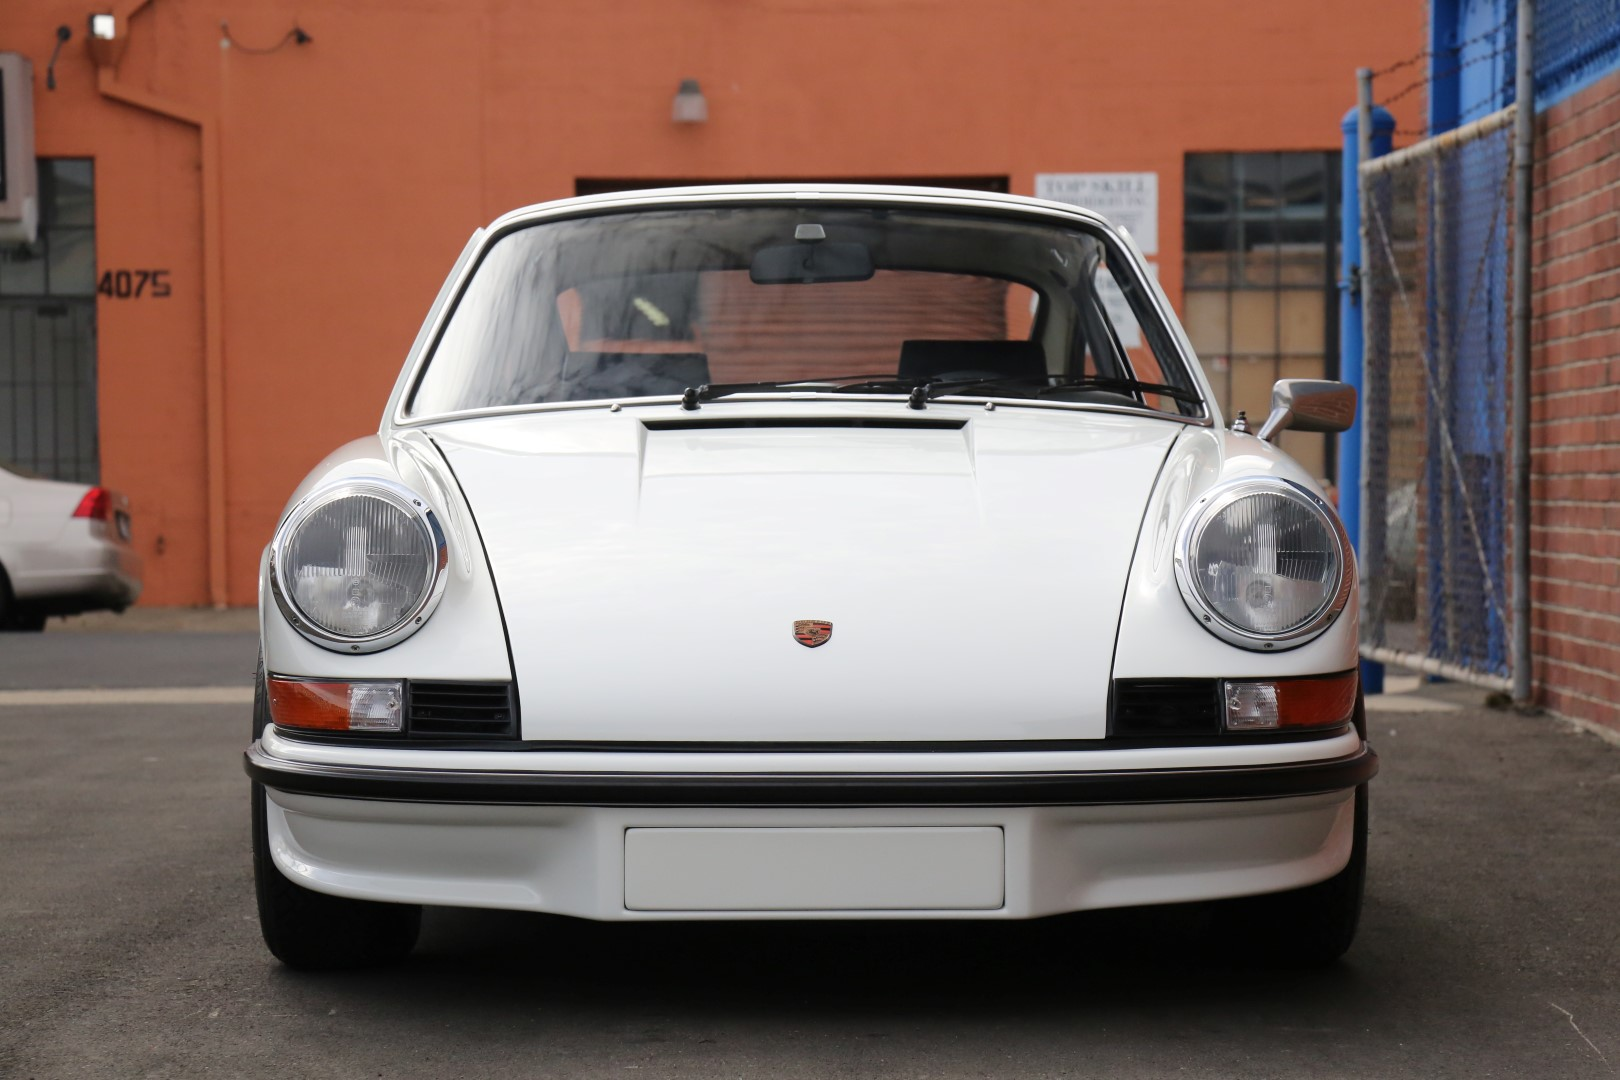 Porsche-911-Carrera-RS-2.7-1973-for-sale-10